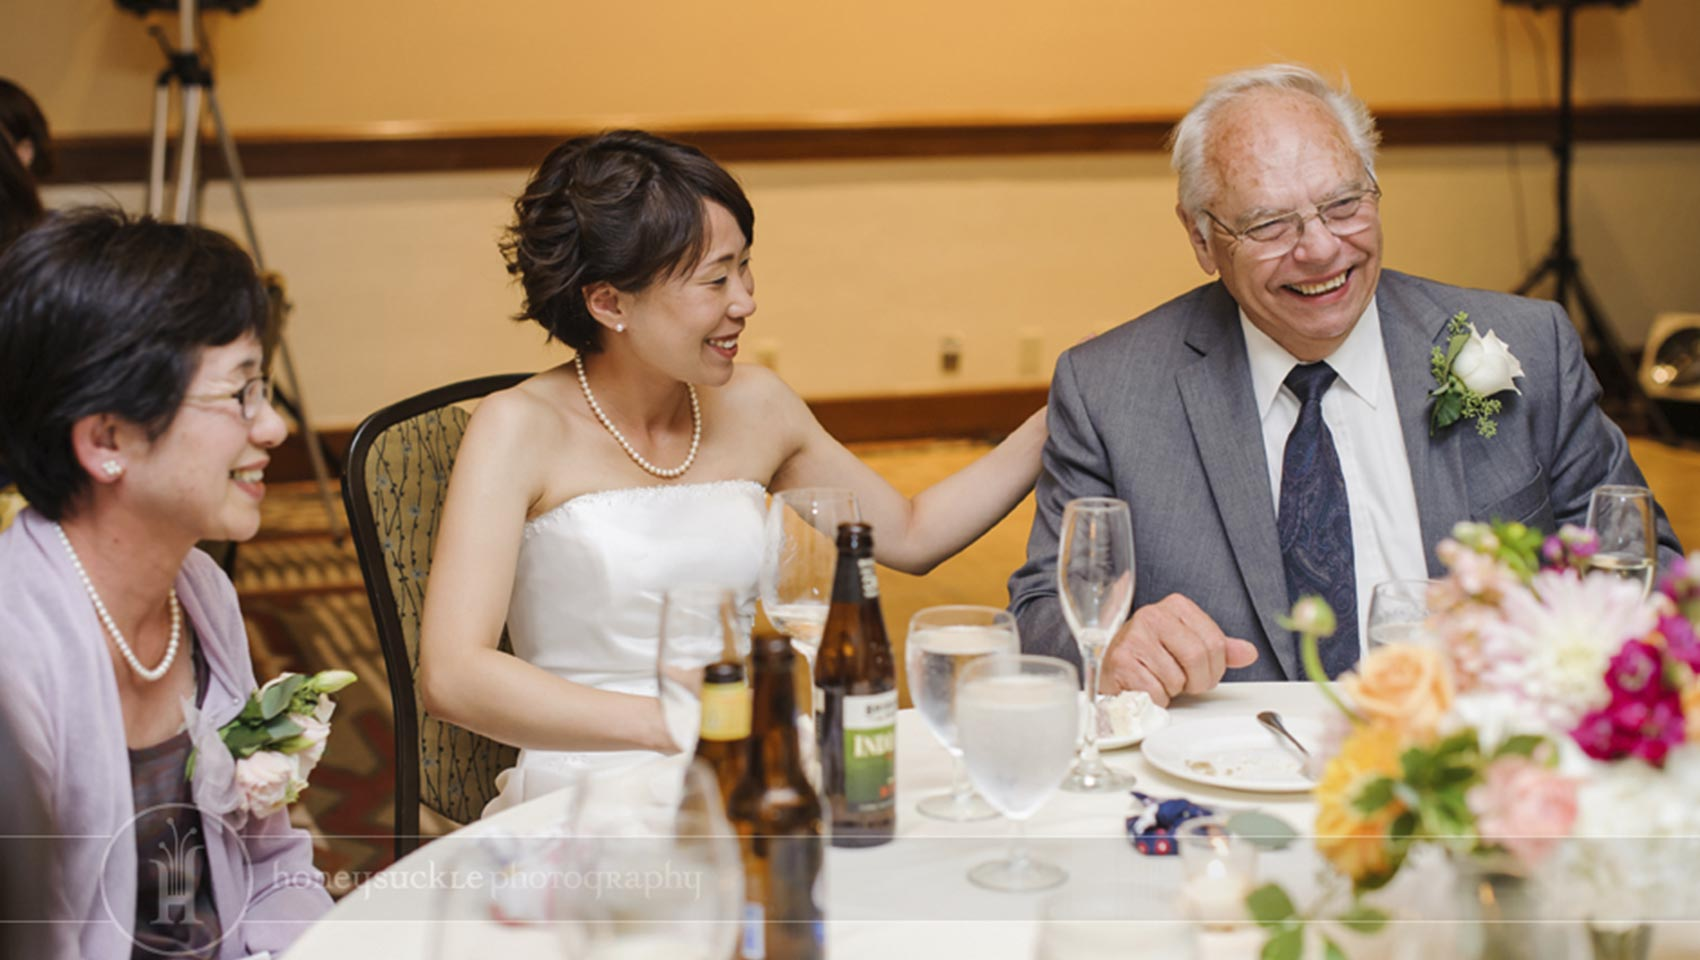 bride sitting and smiling with parents at wedding reception